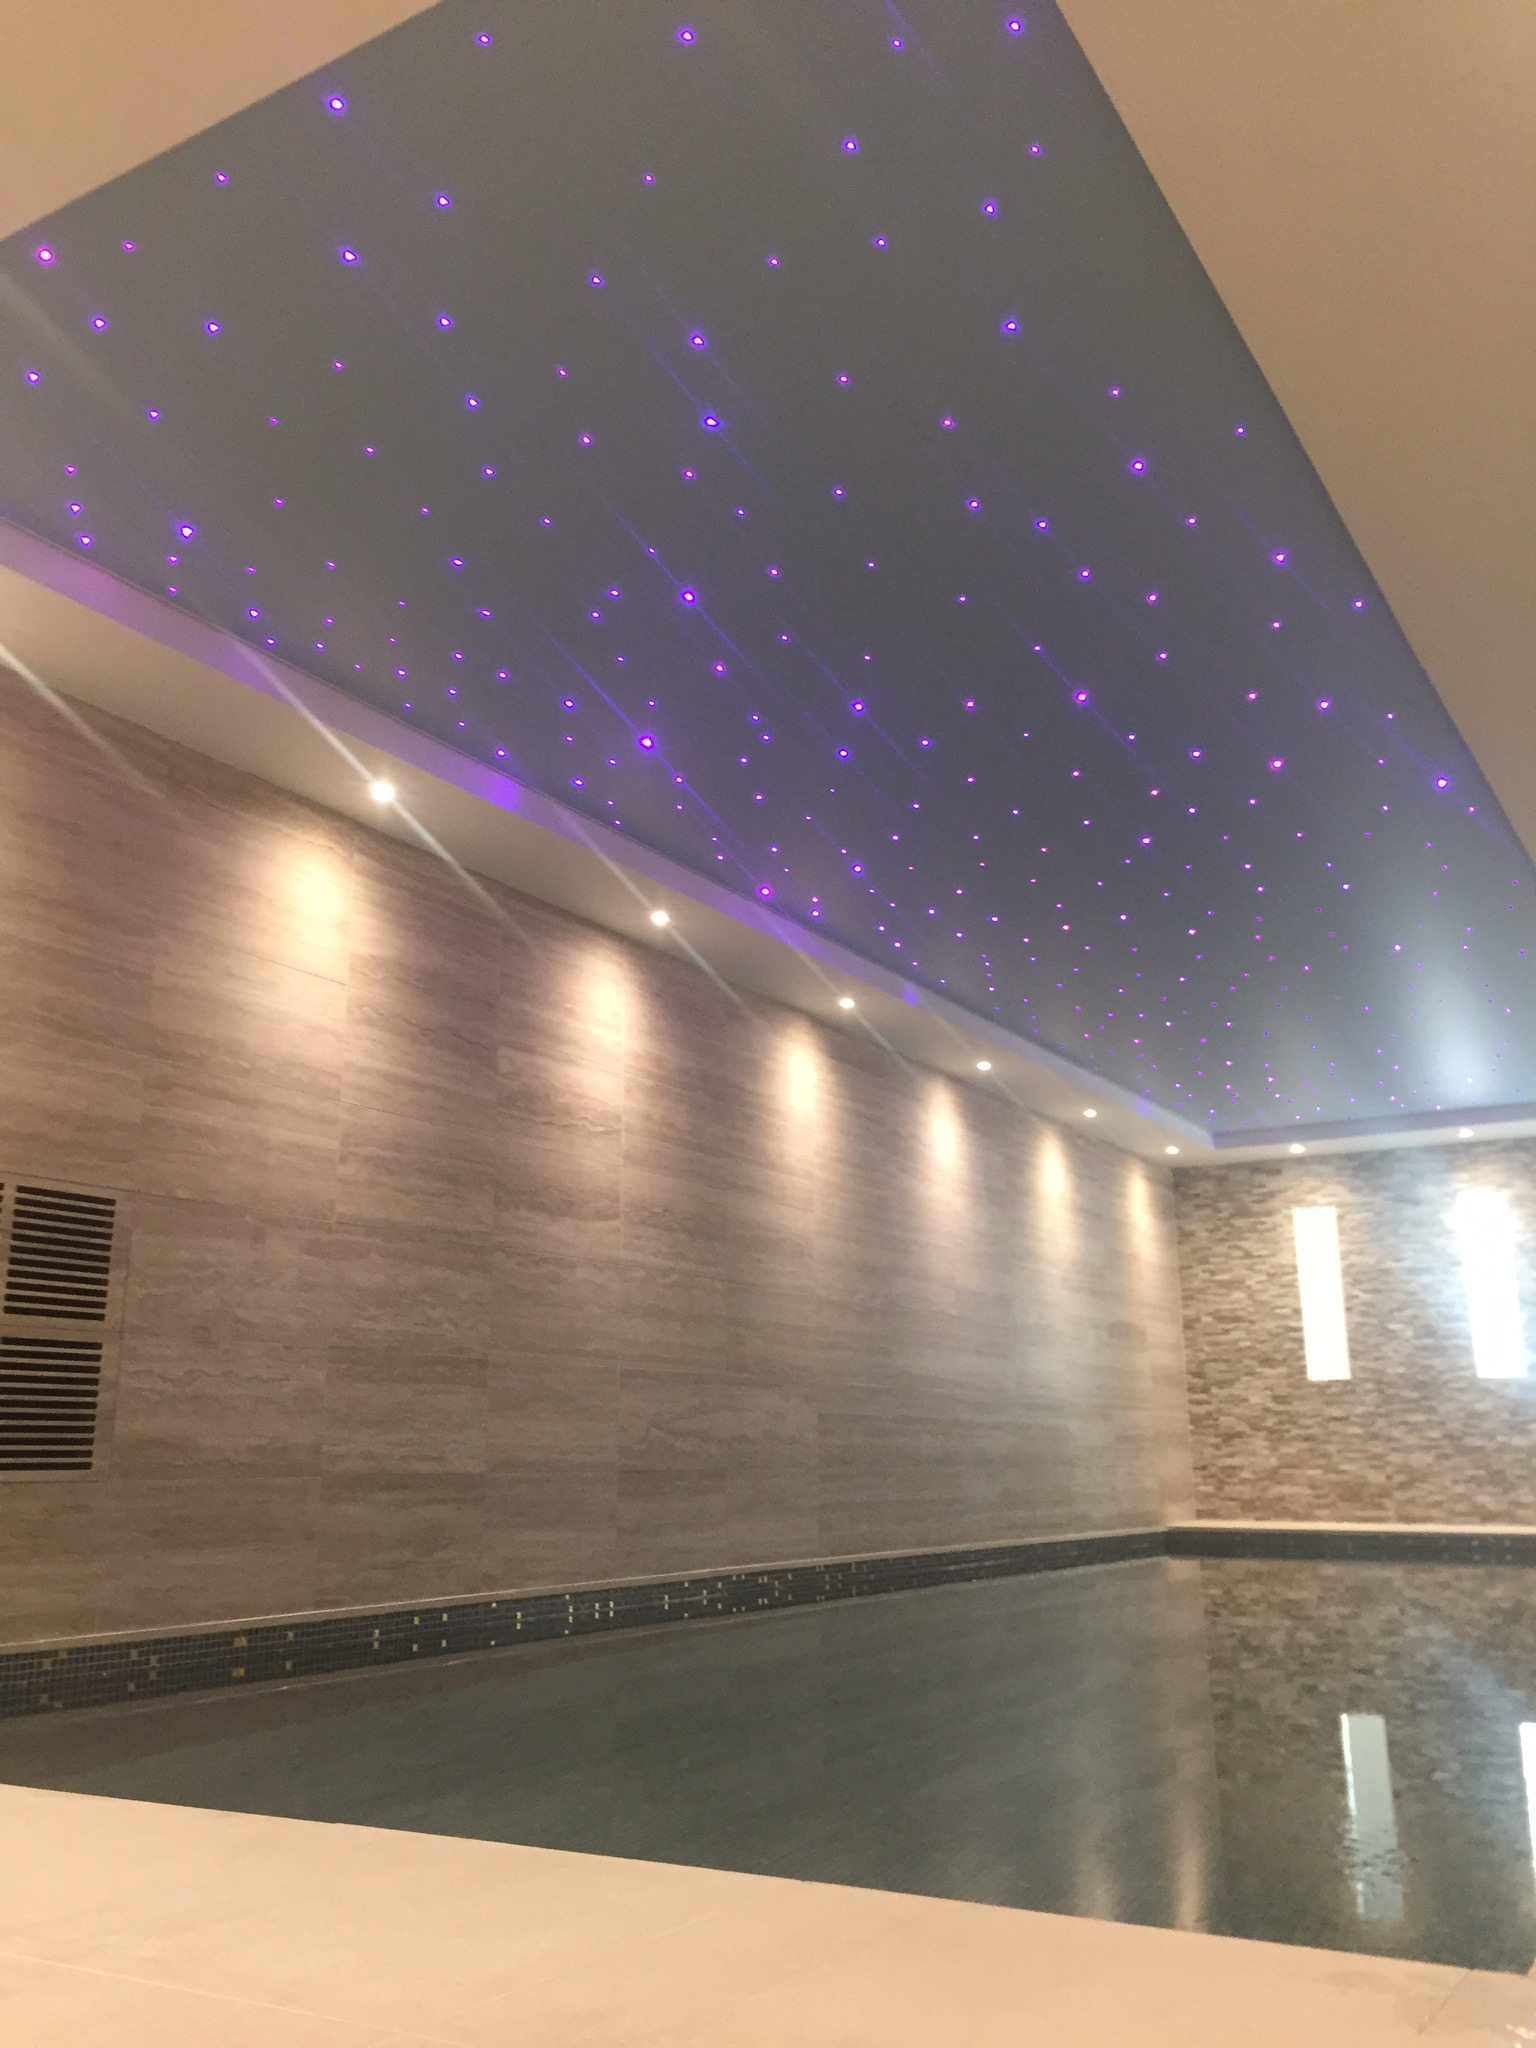 Wall Light For Steam Room : luxury Archives - Brookforge Swimming Pool Build